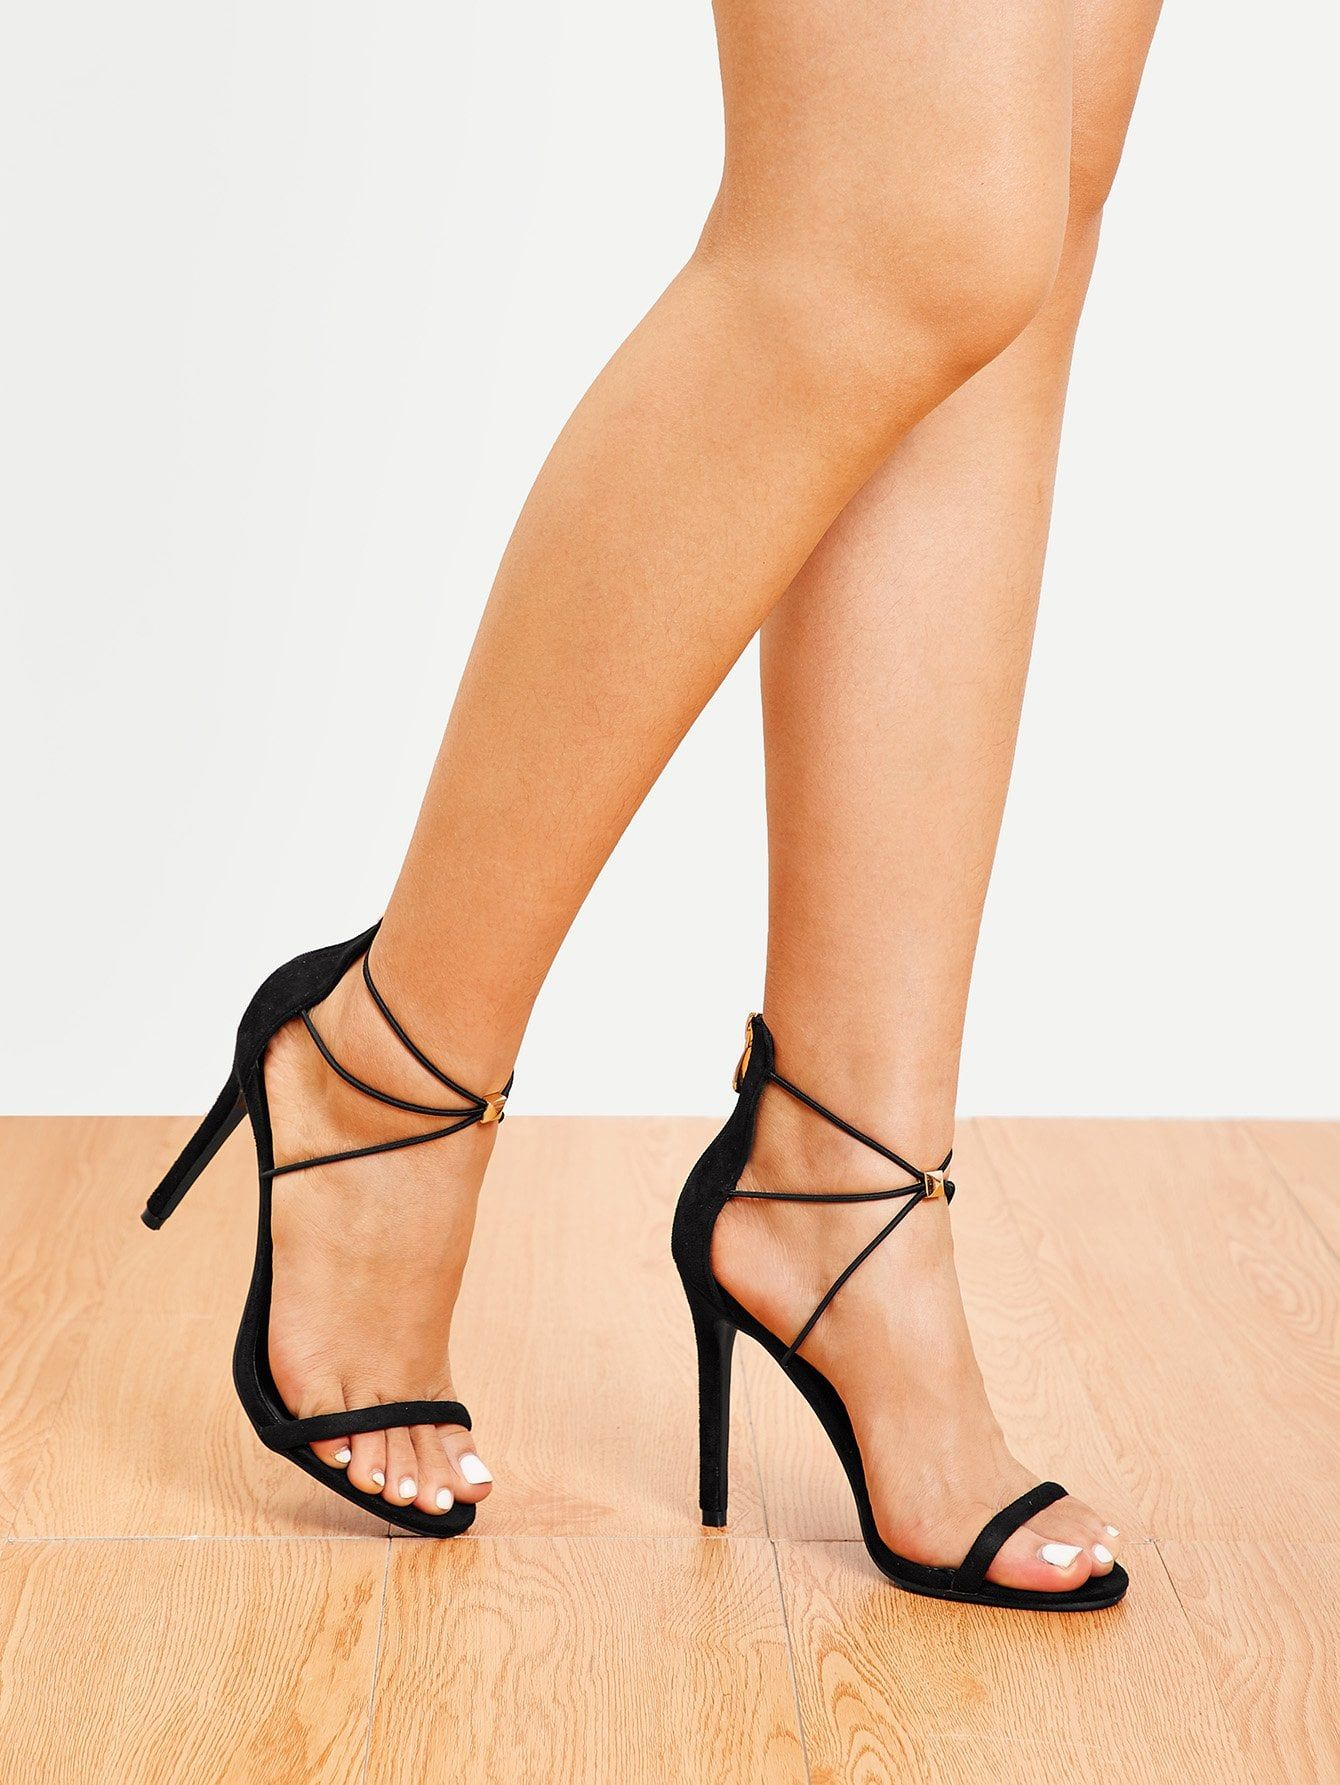 4cb1578c85 Elegant Open Toe Strappy Black High Heel Stiletto Single Band Tie Leg  Stiletto Heels